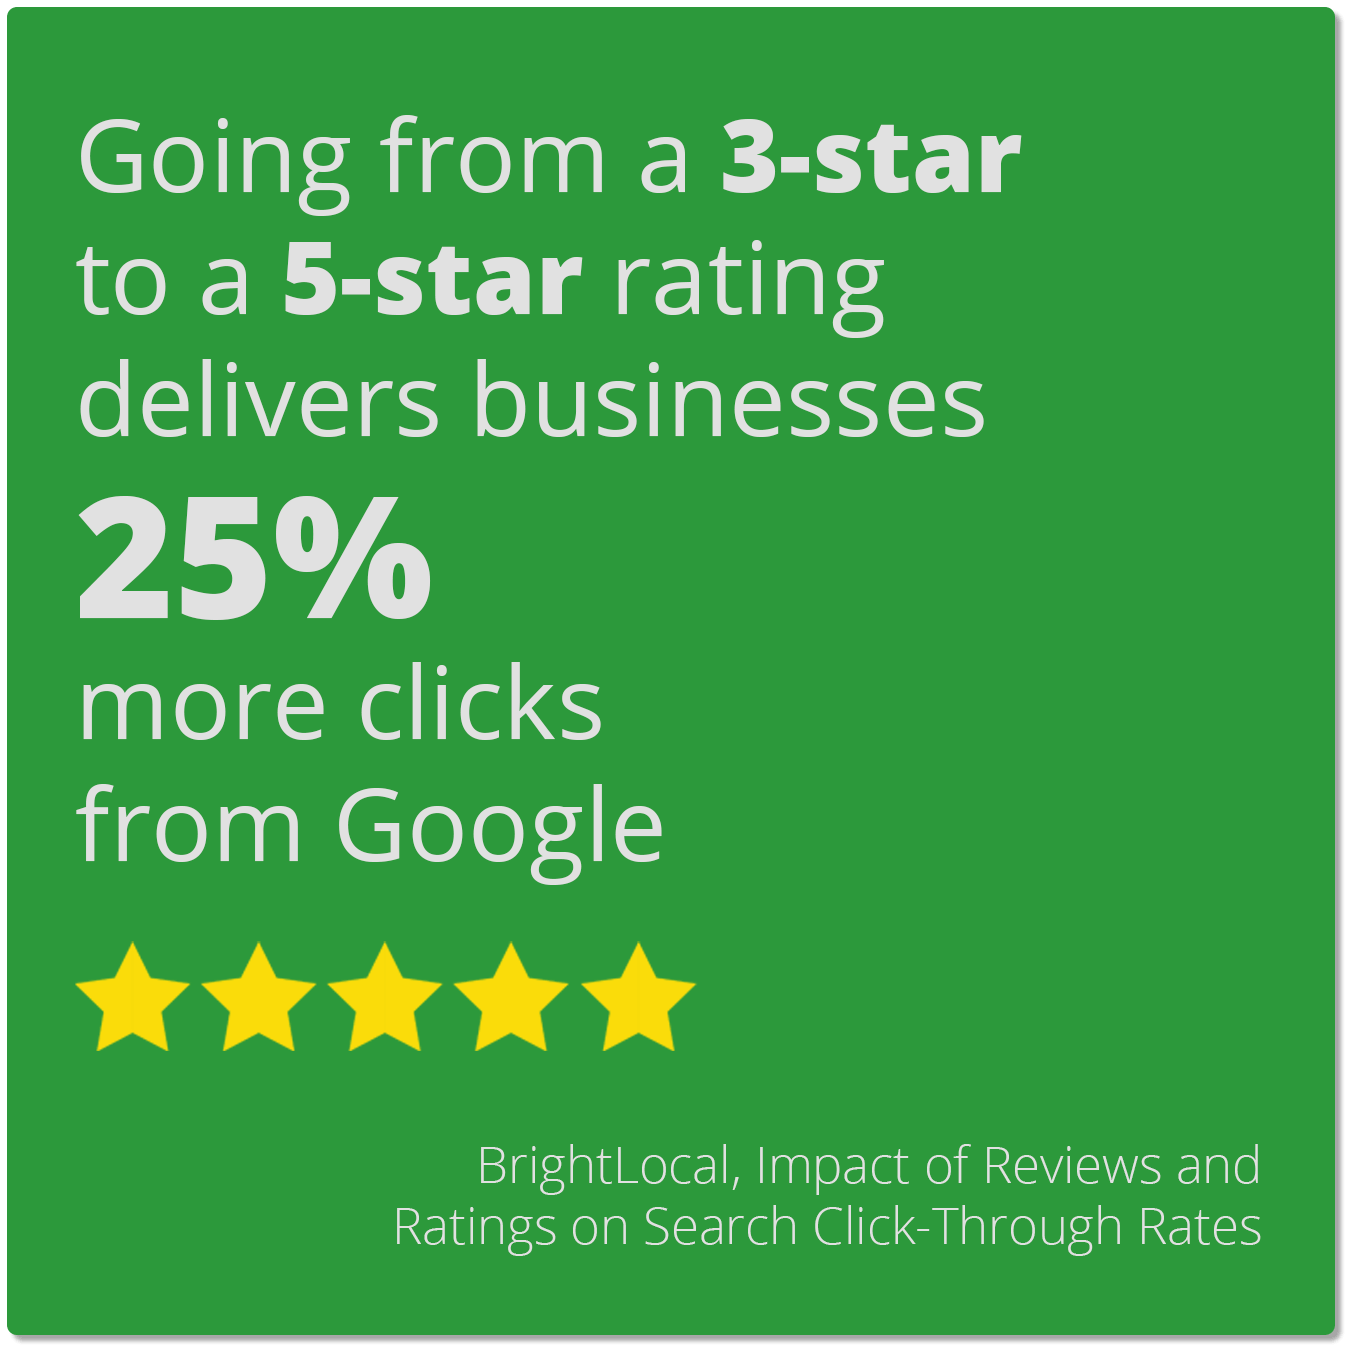 Going from a 3-star to a 5-star rating delivers businesses 25% more clicks from Google